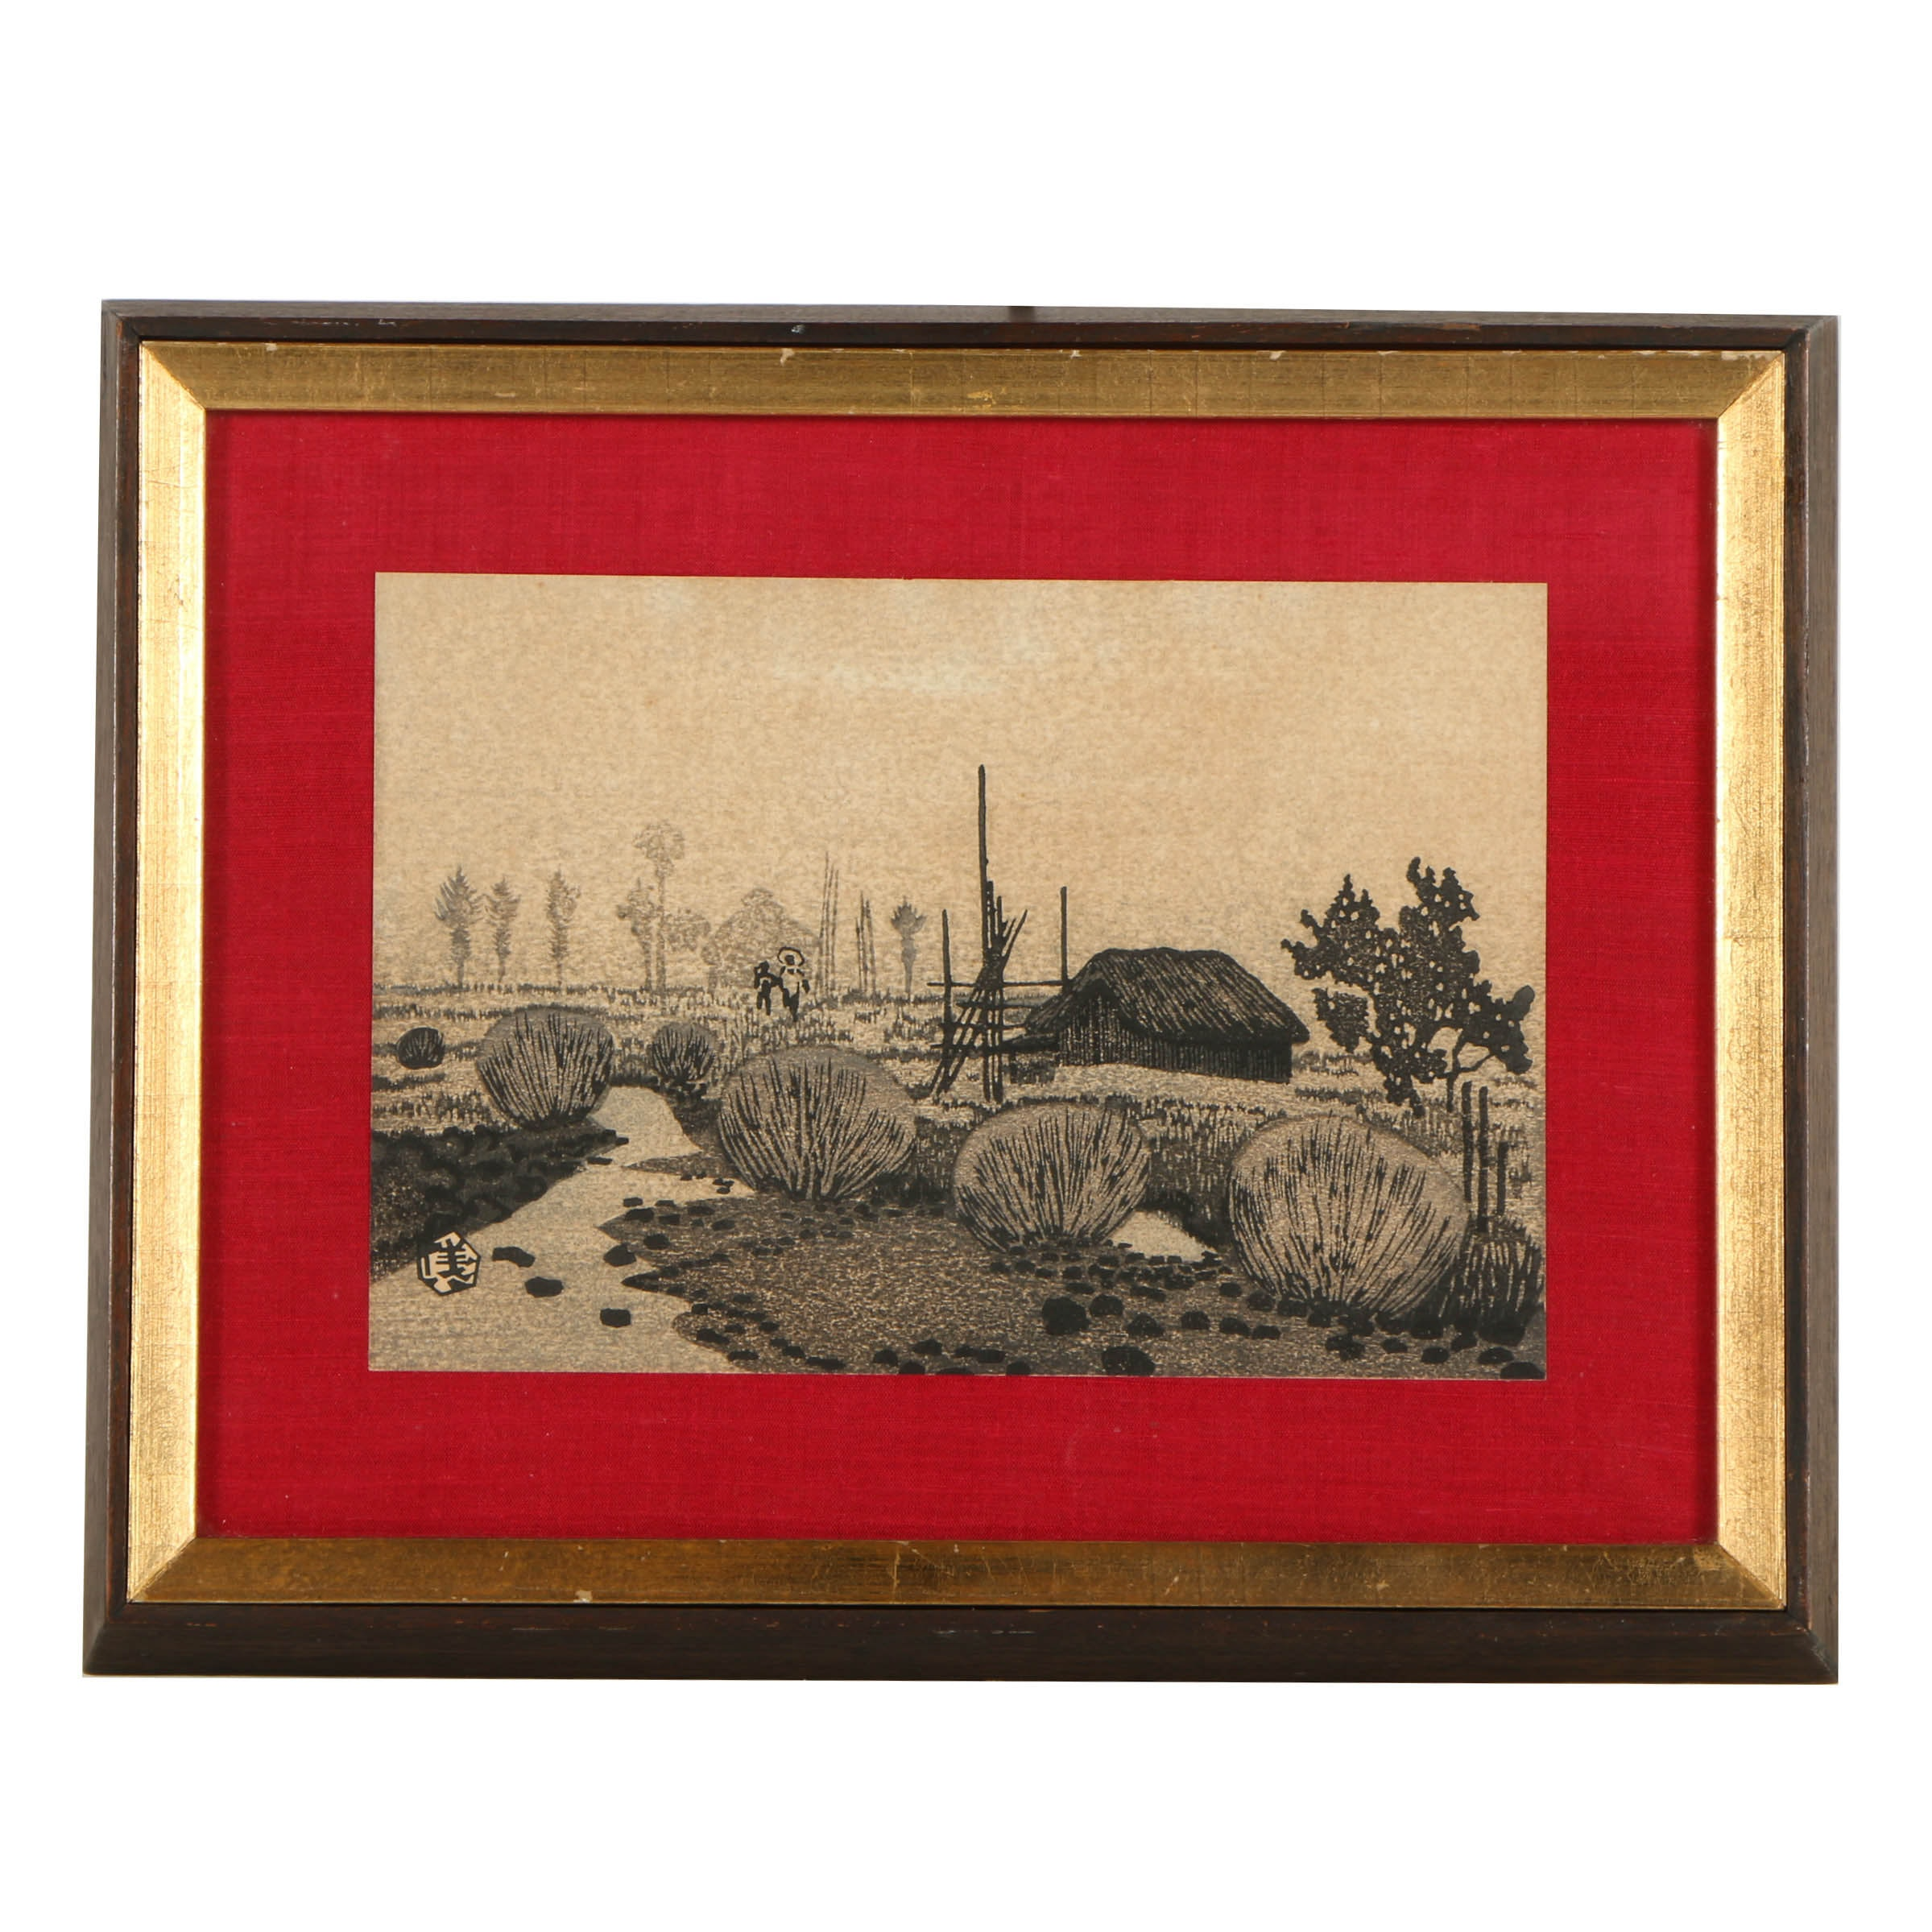 Lithograph Print on Paper of Southeast Asian Landscape Scene